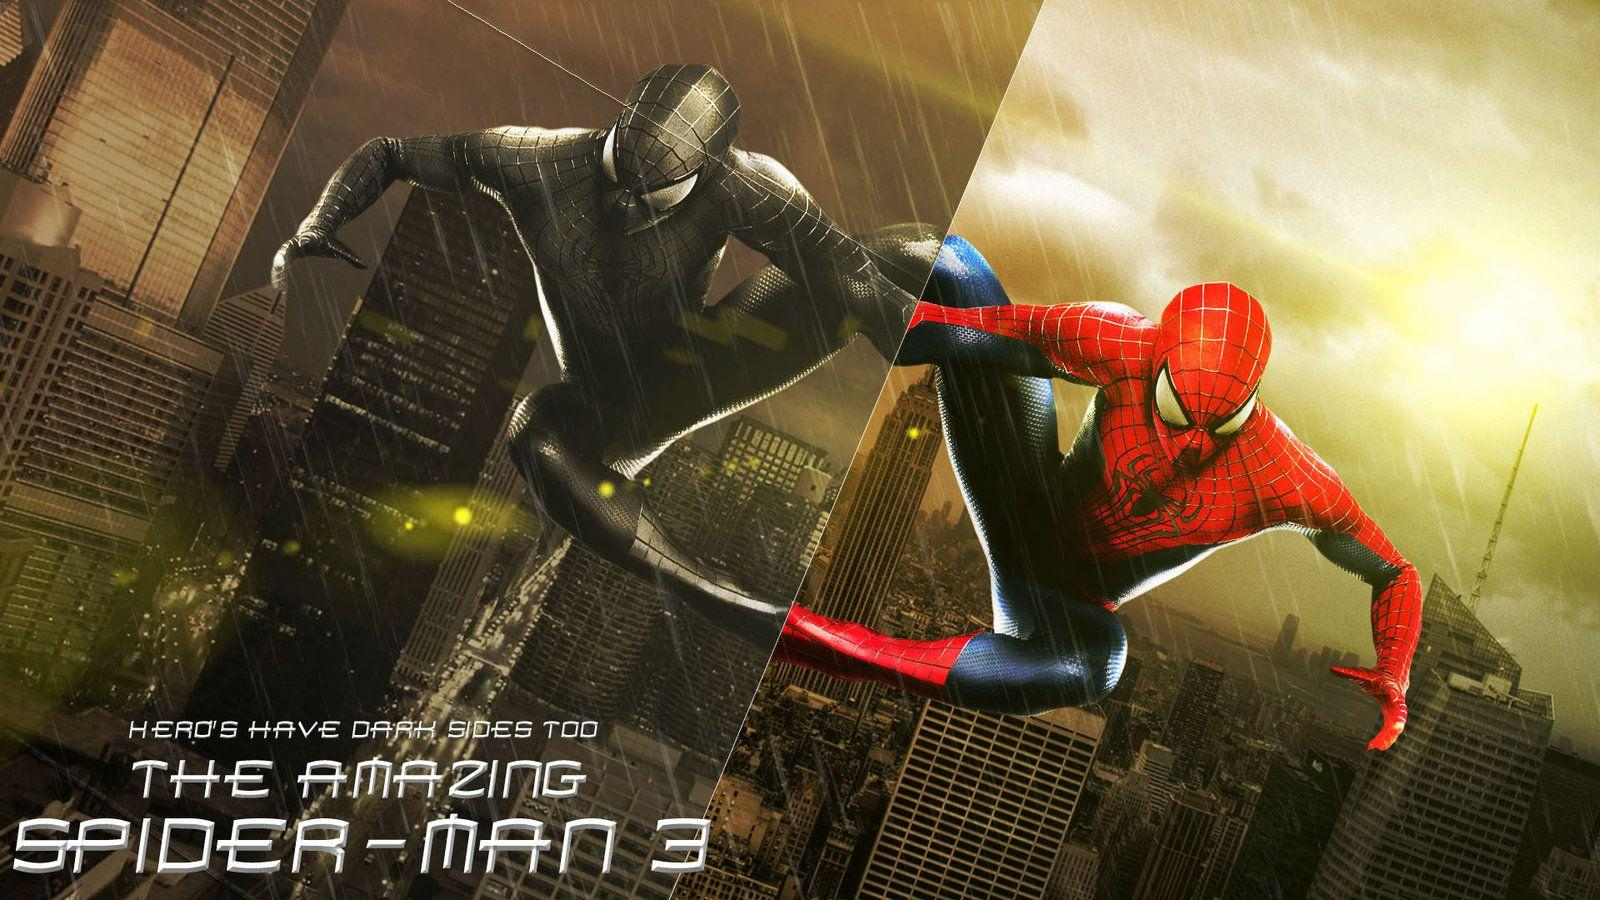 Spiderman 3 Hd Wallpapers